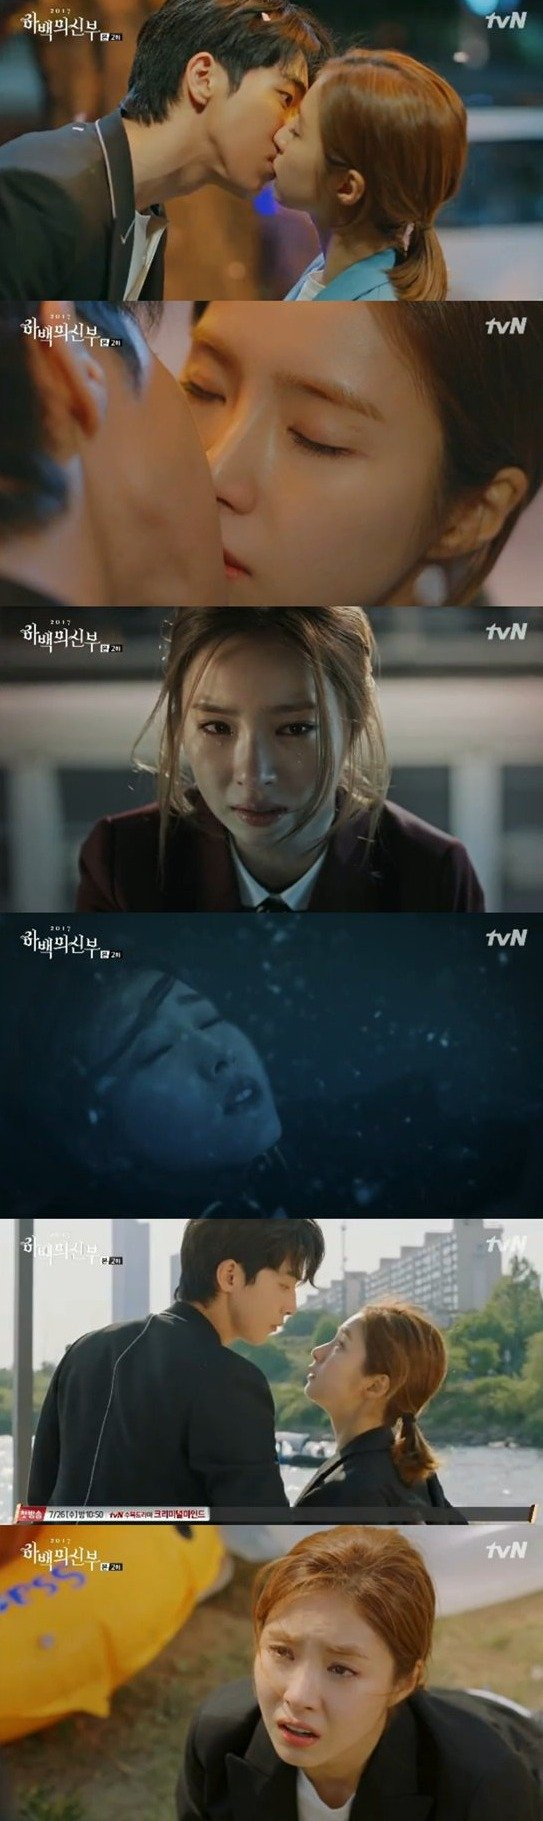 [Spoiler] Added episode 2 captures for the Korean drama 'Bride of the Water God 2017'